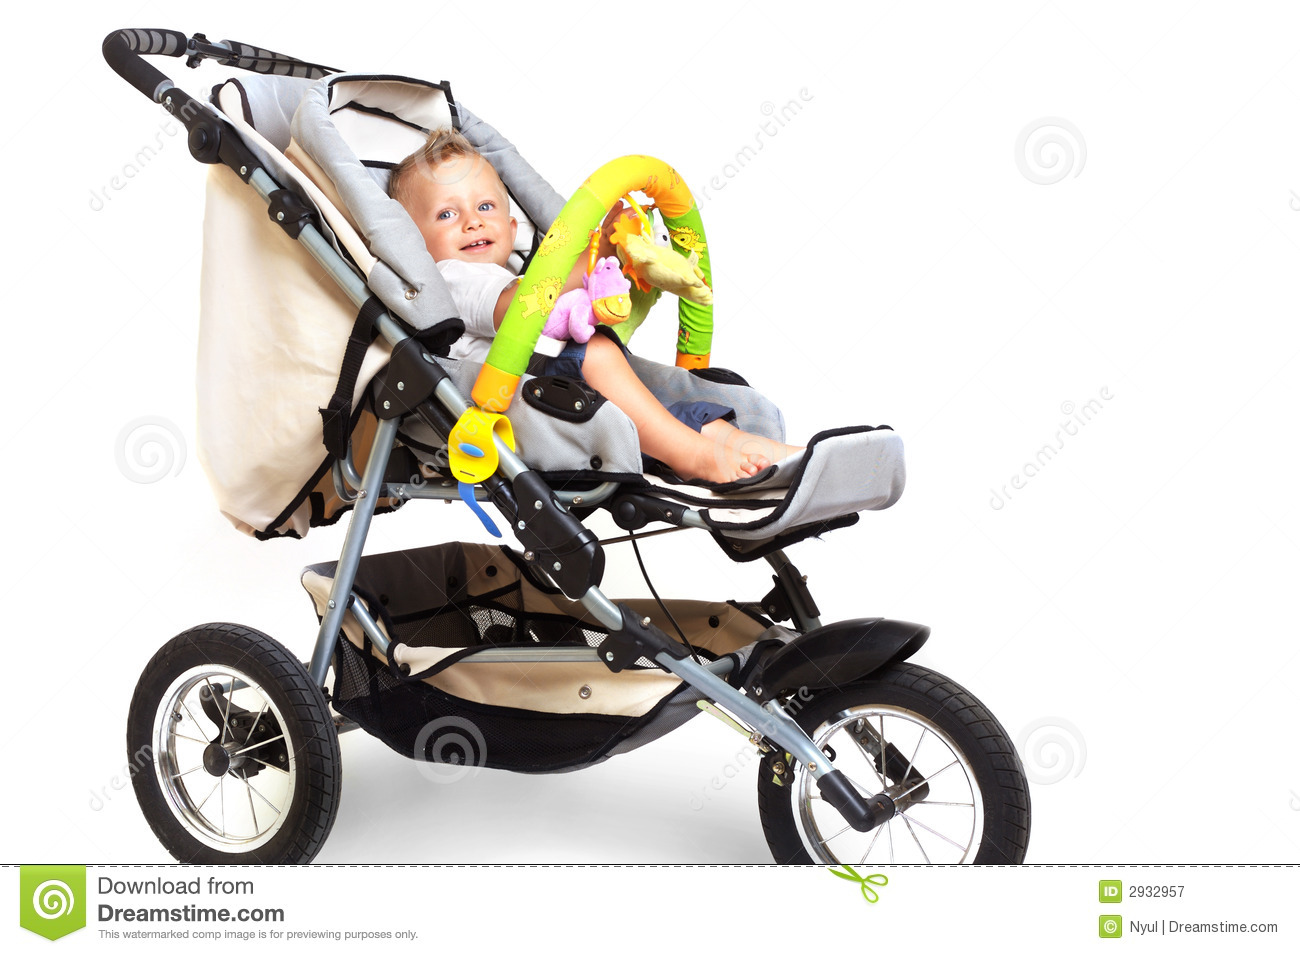 Mom With Baby And Stroller Stock Photos - Image: 11106183